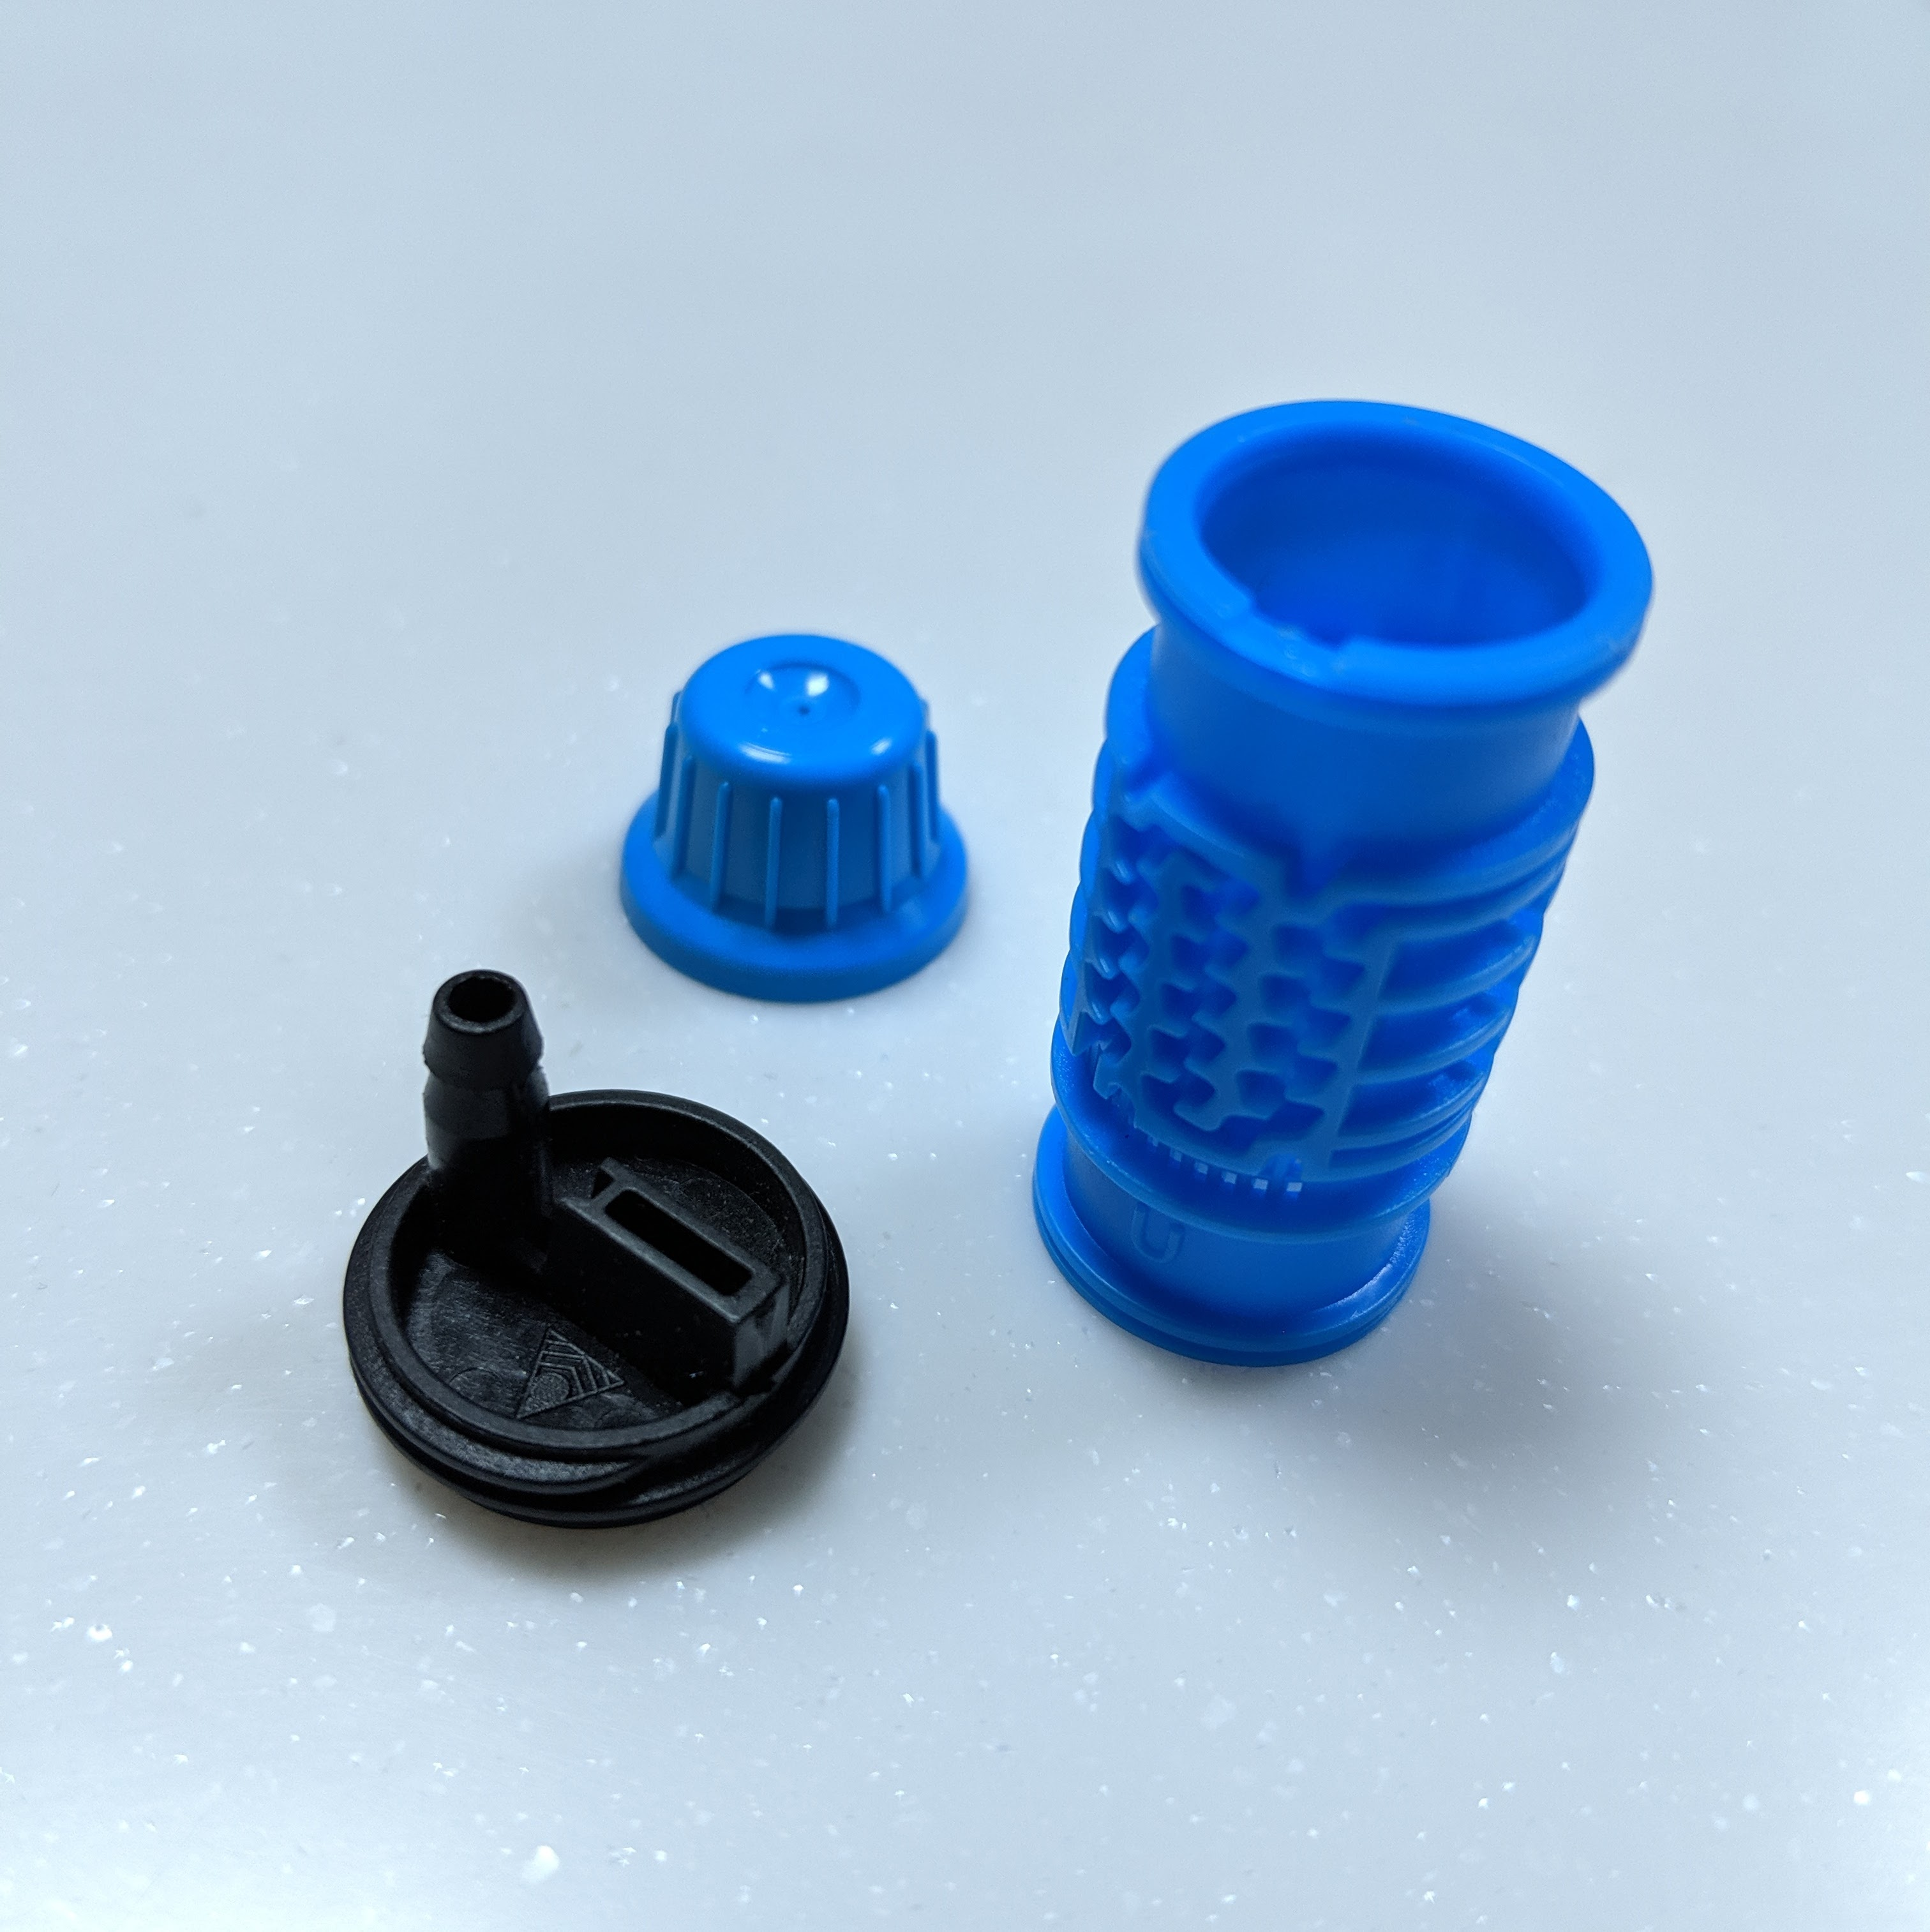 Dripper Components